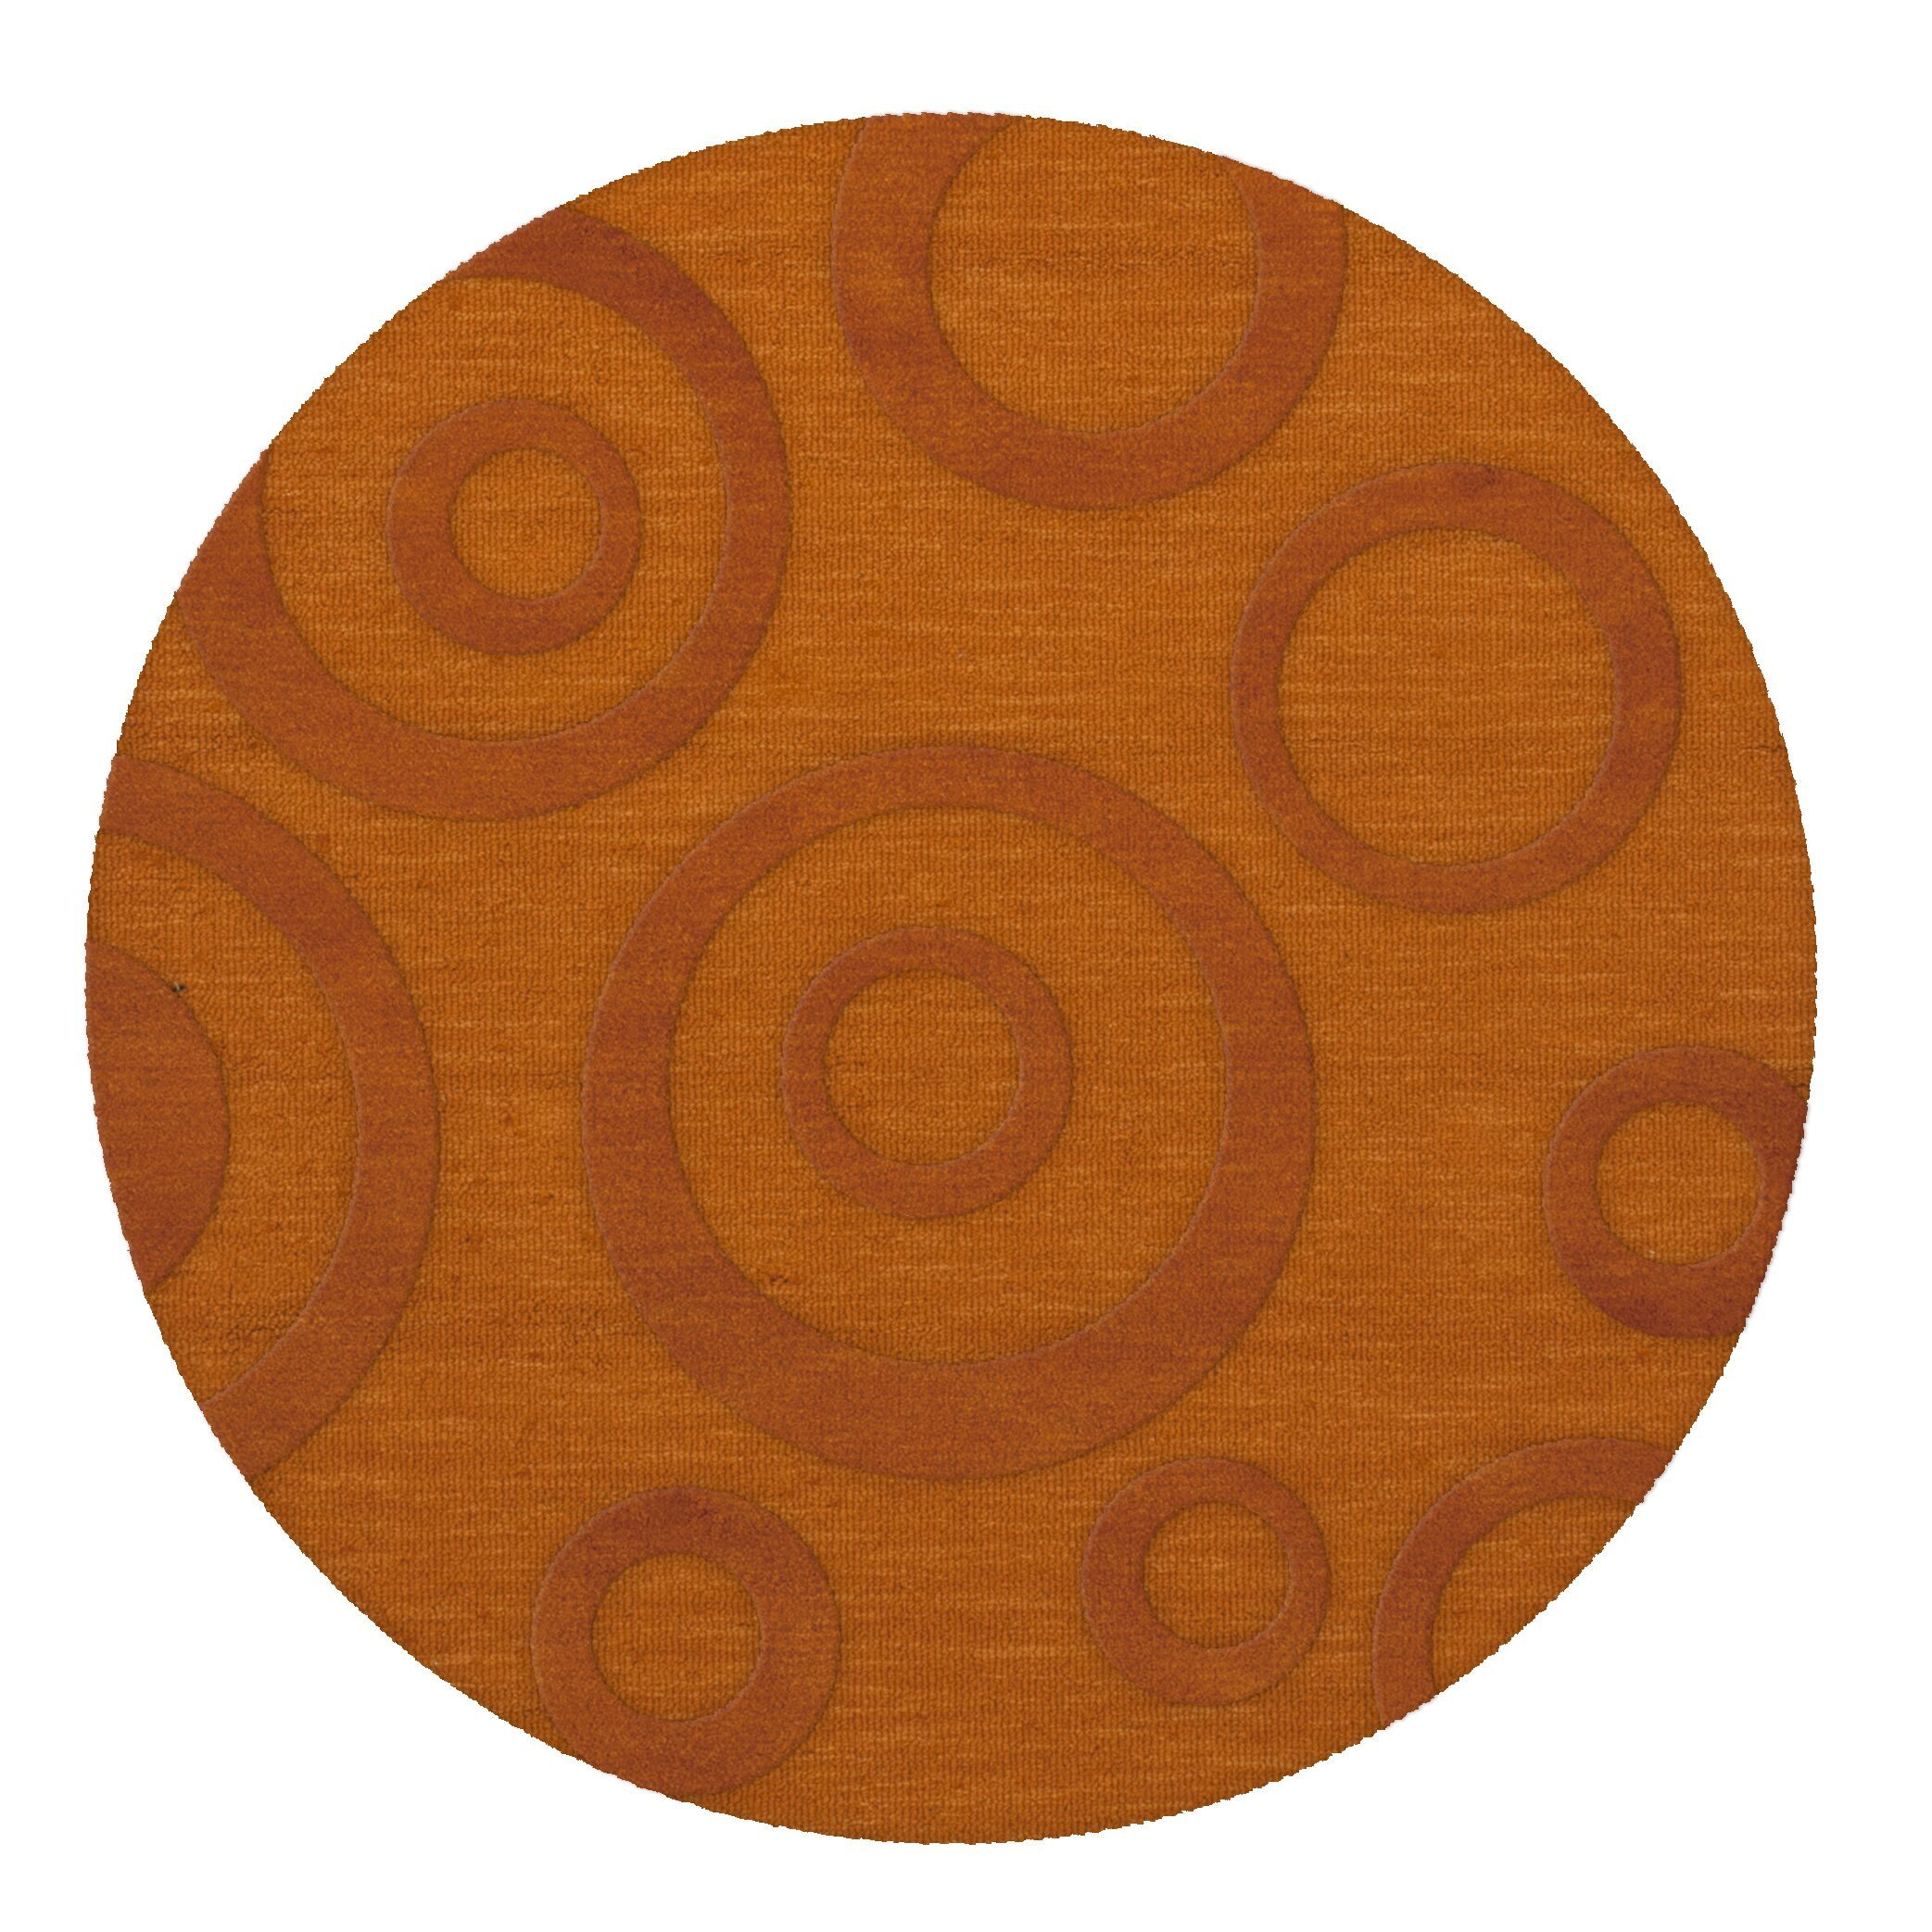 Dover Tufted Wool Orange Area Rug Rug Size: Round 6'